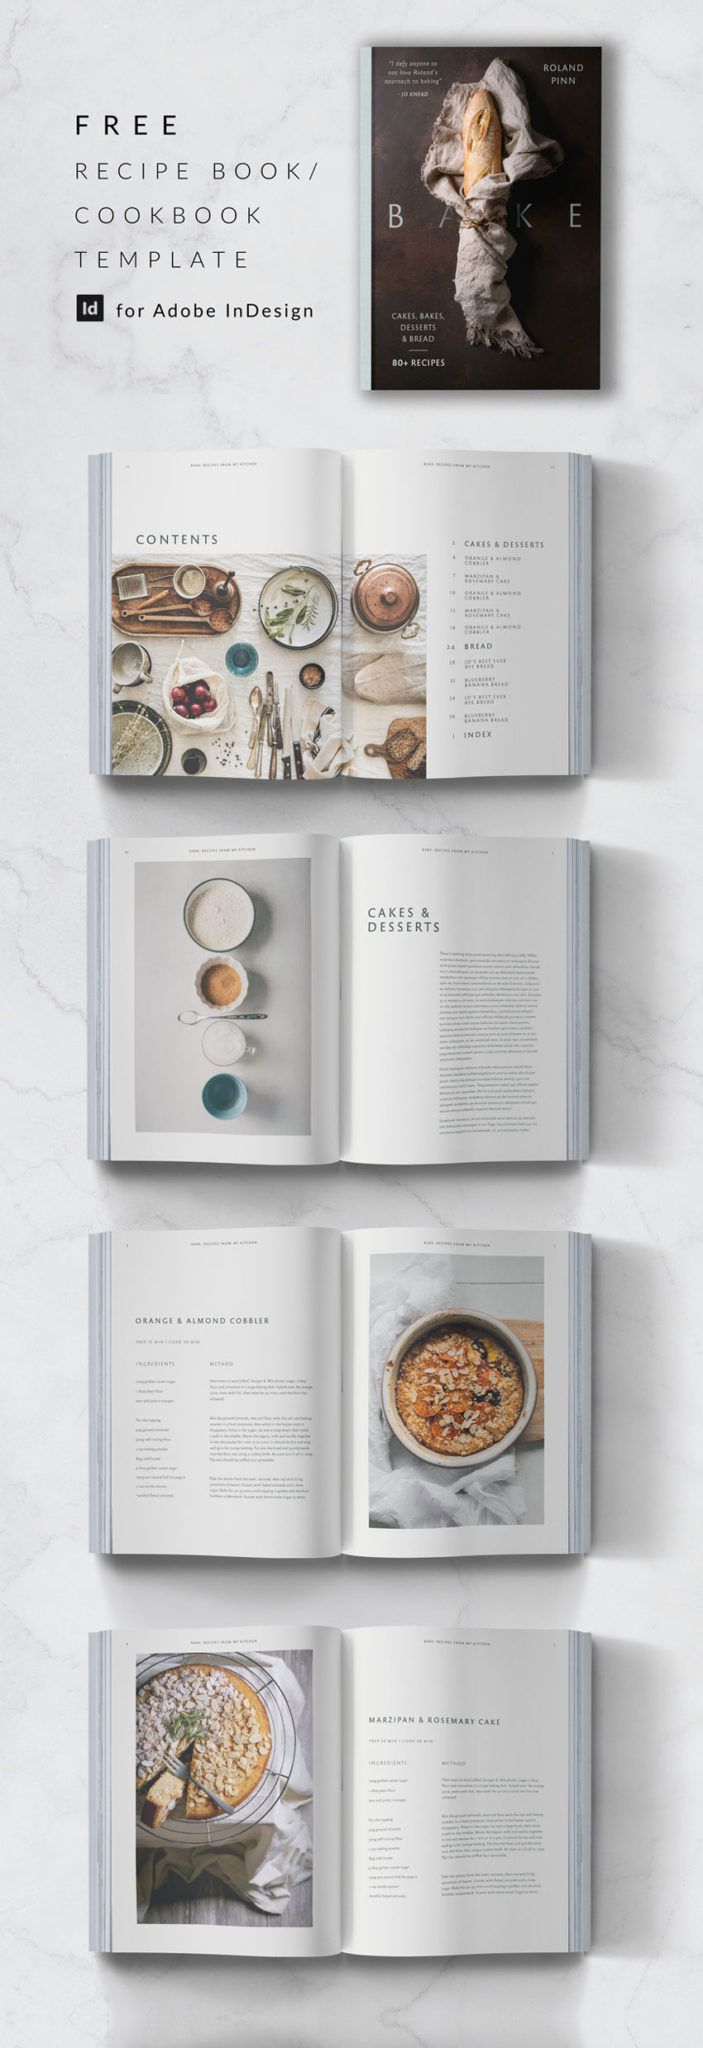 009 Amazing Free Recipe Book Template Concept  Editable Cookbook For Microsoft Word IndesignFull